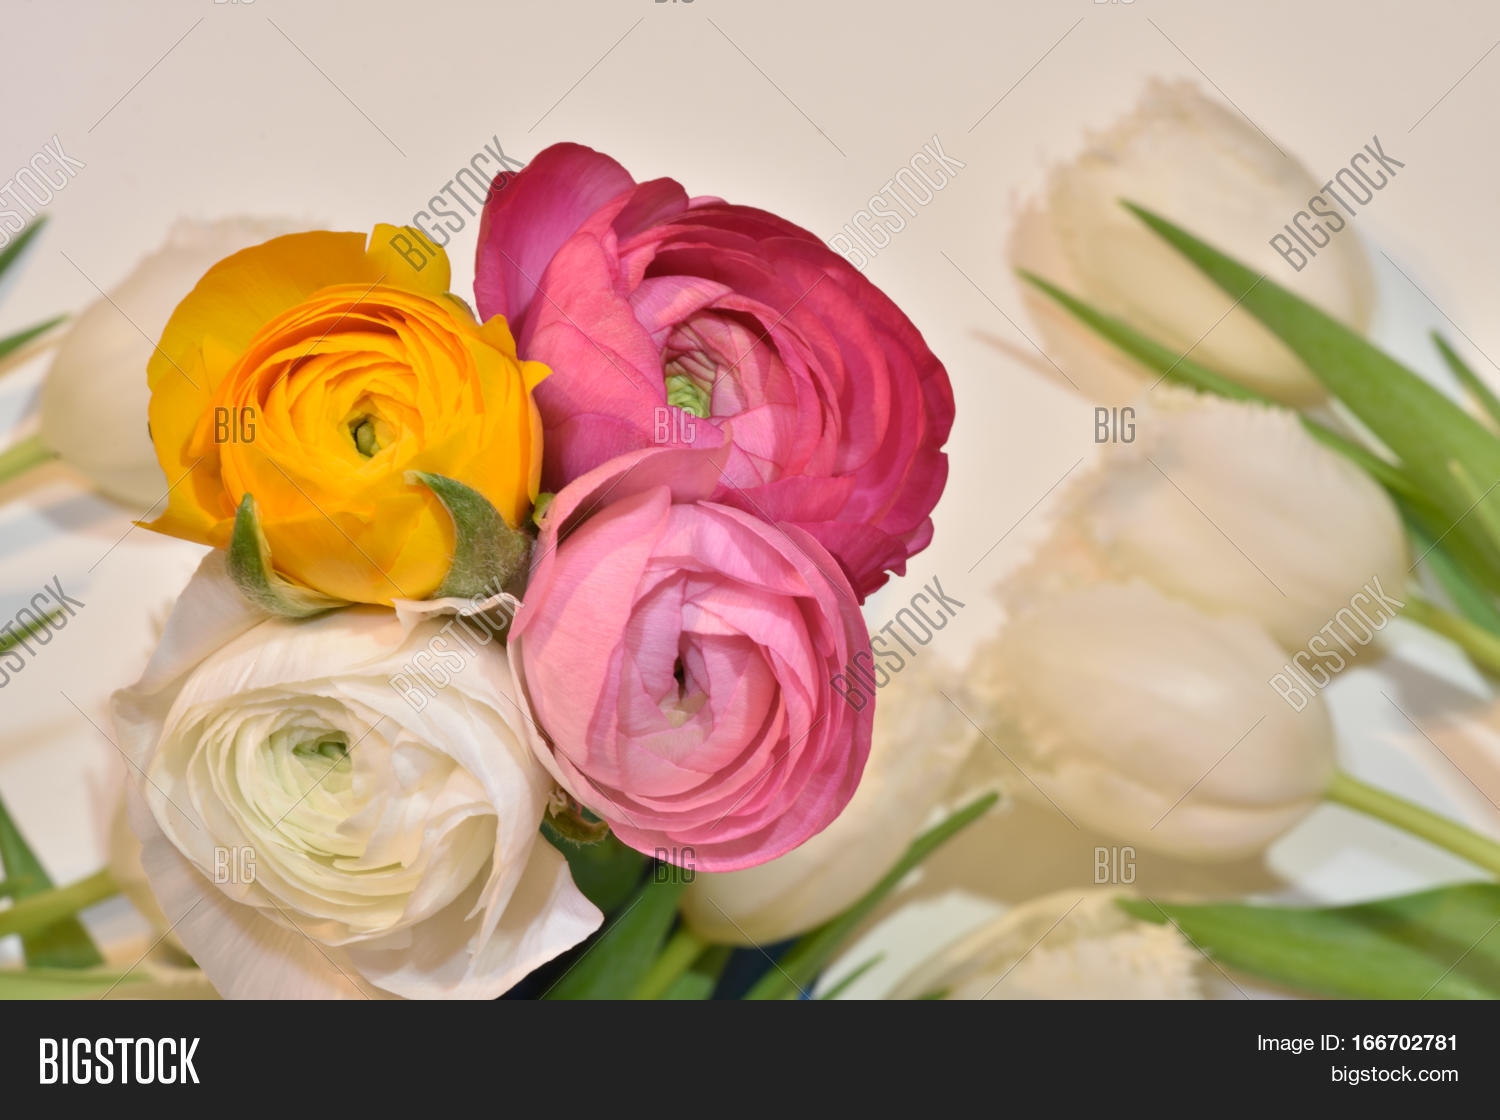 Beautiful flowers image photo free trial bigstock beautiful flowers in different colours ranunculus tulips white background springflowers izmirmasajfo